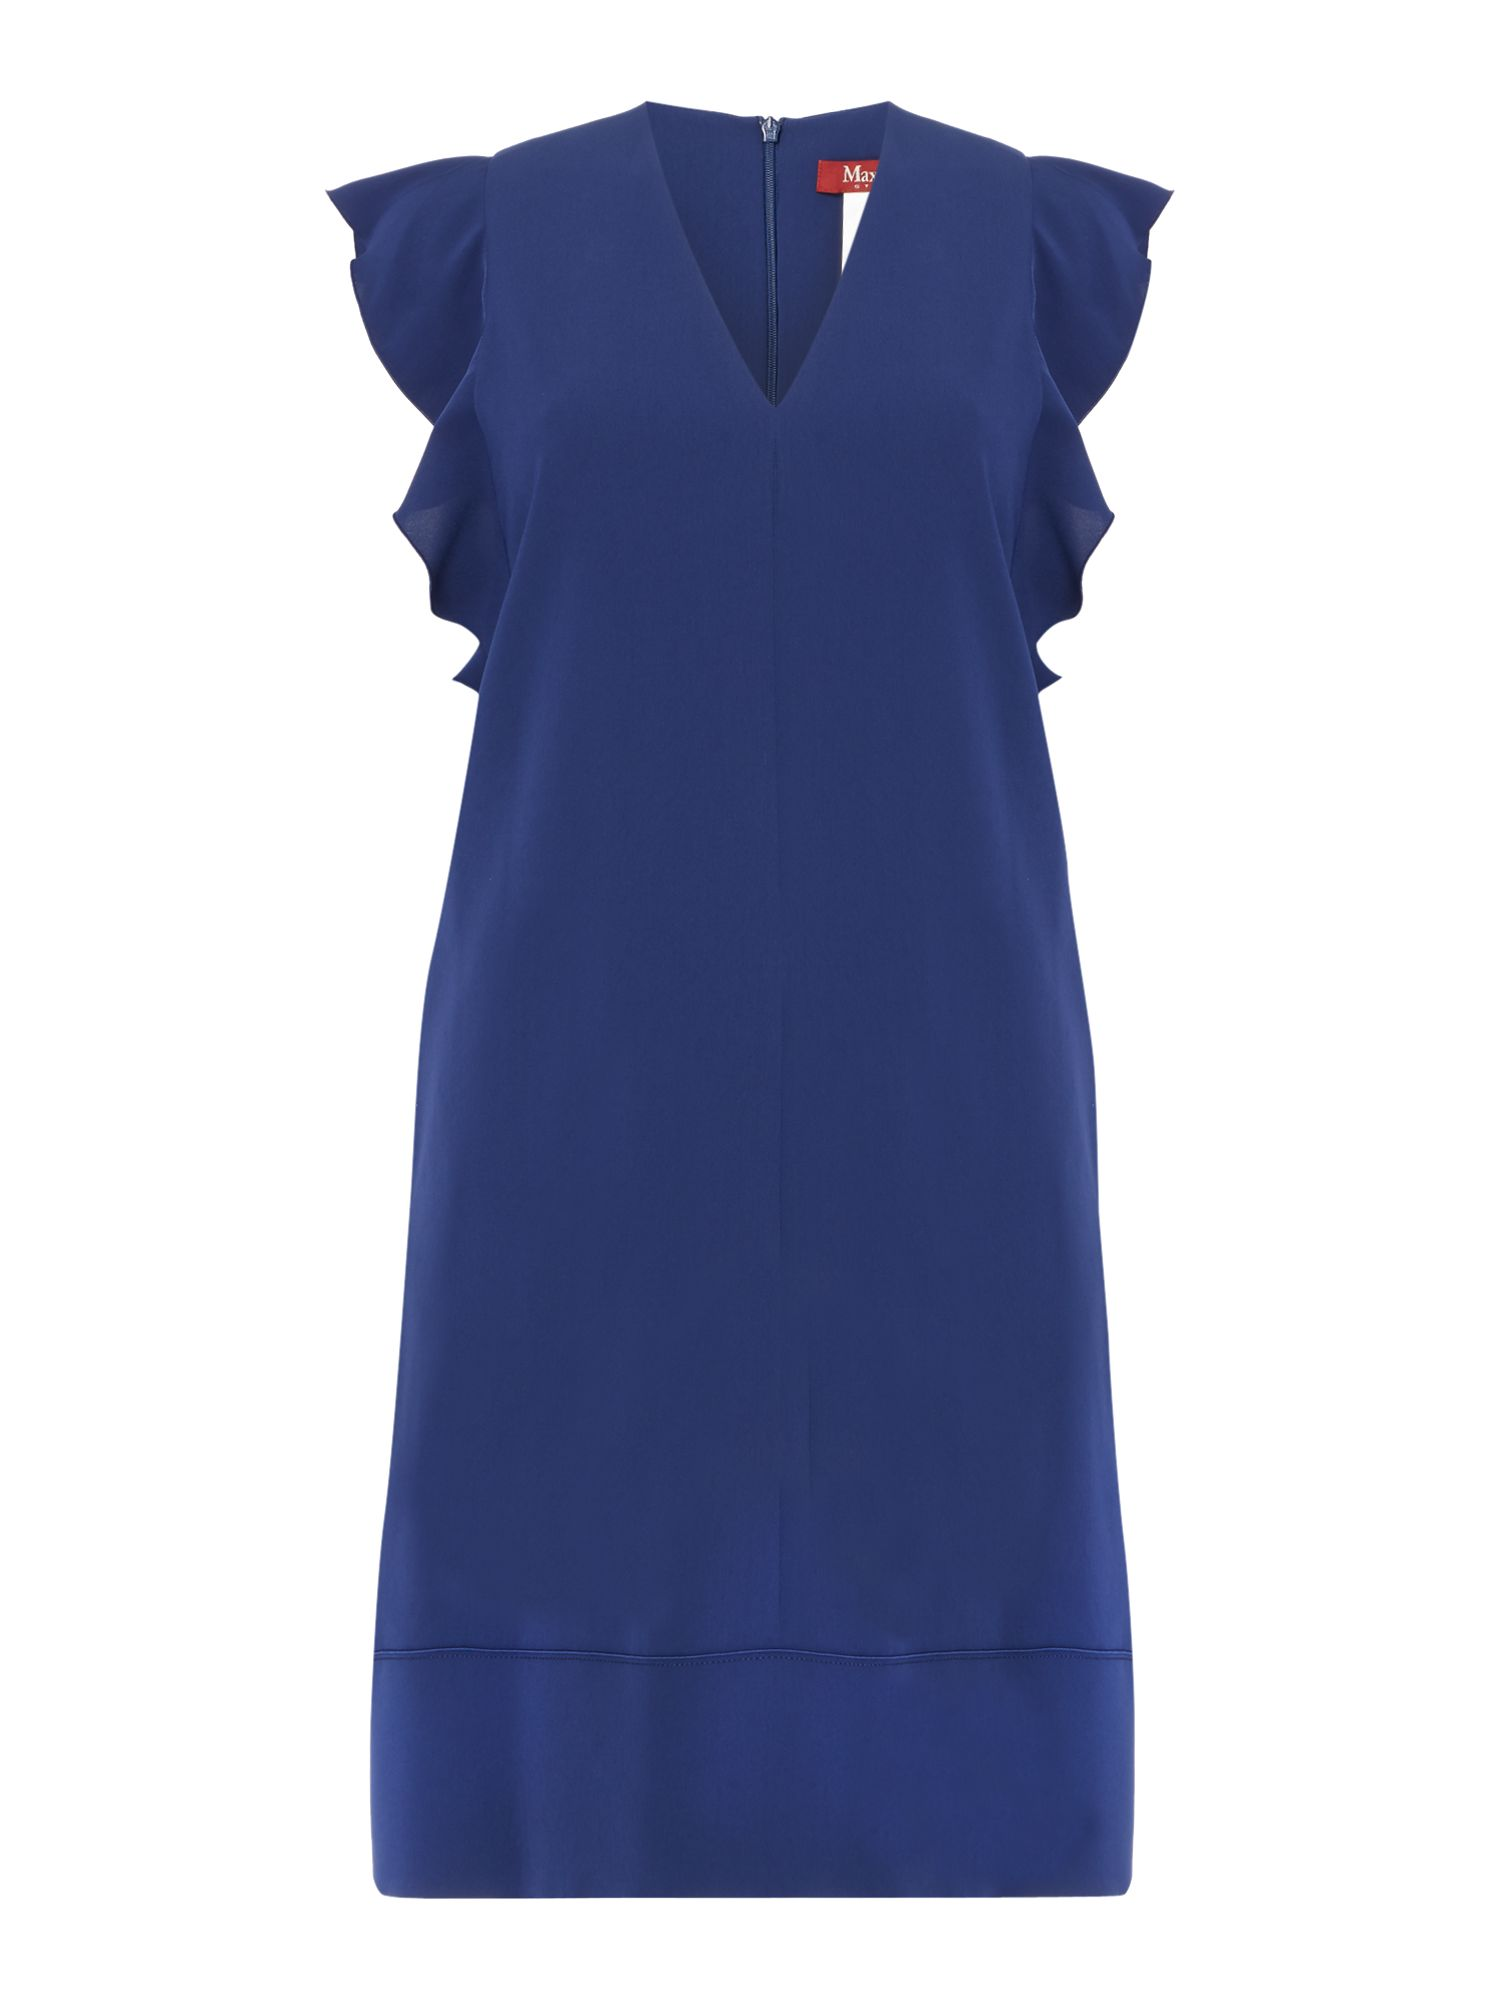 Max Mara Studio Trofeo ruffle sleeve shift dress, Blue